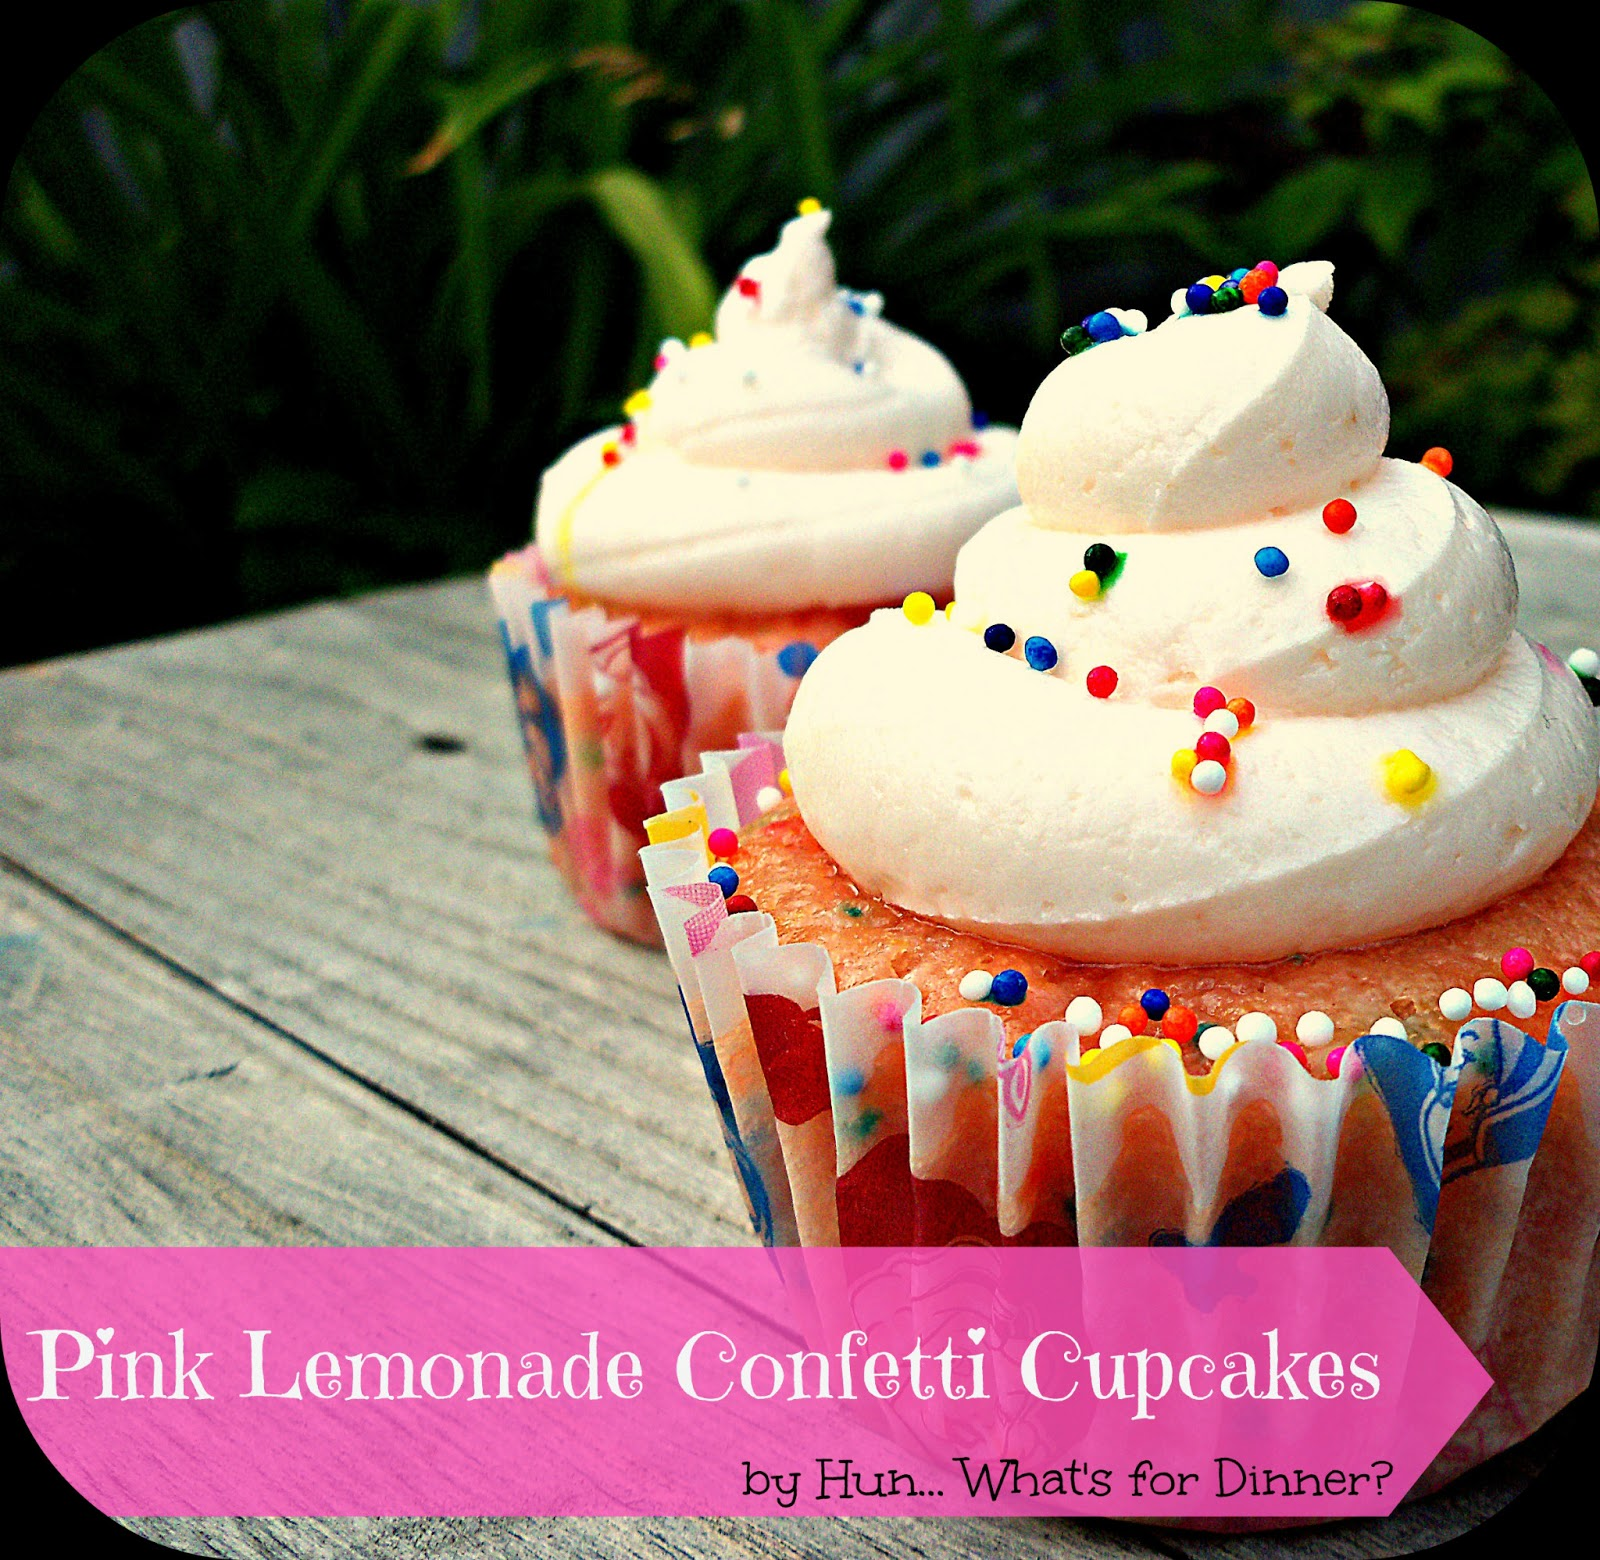 Hun... What's for Dinner?: Pink Lemonade Confetti Cupcakes